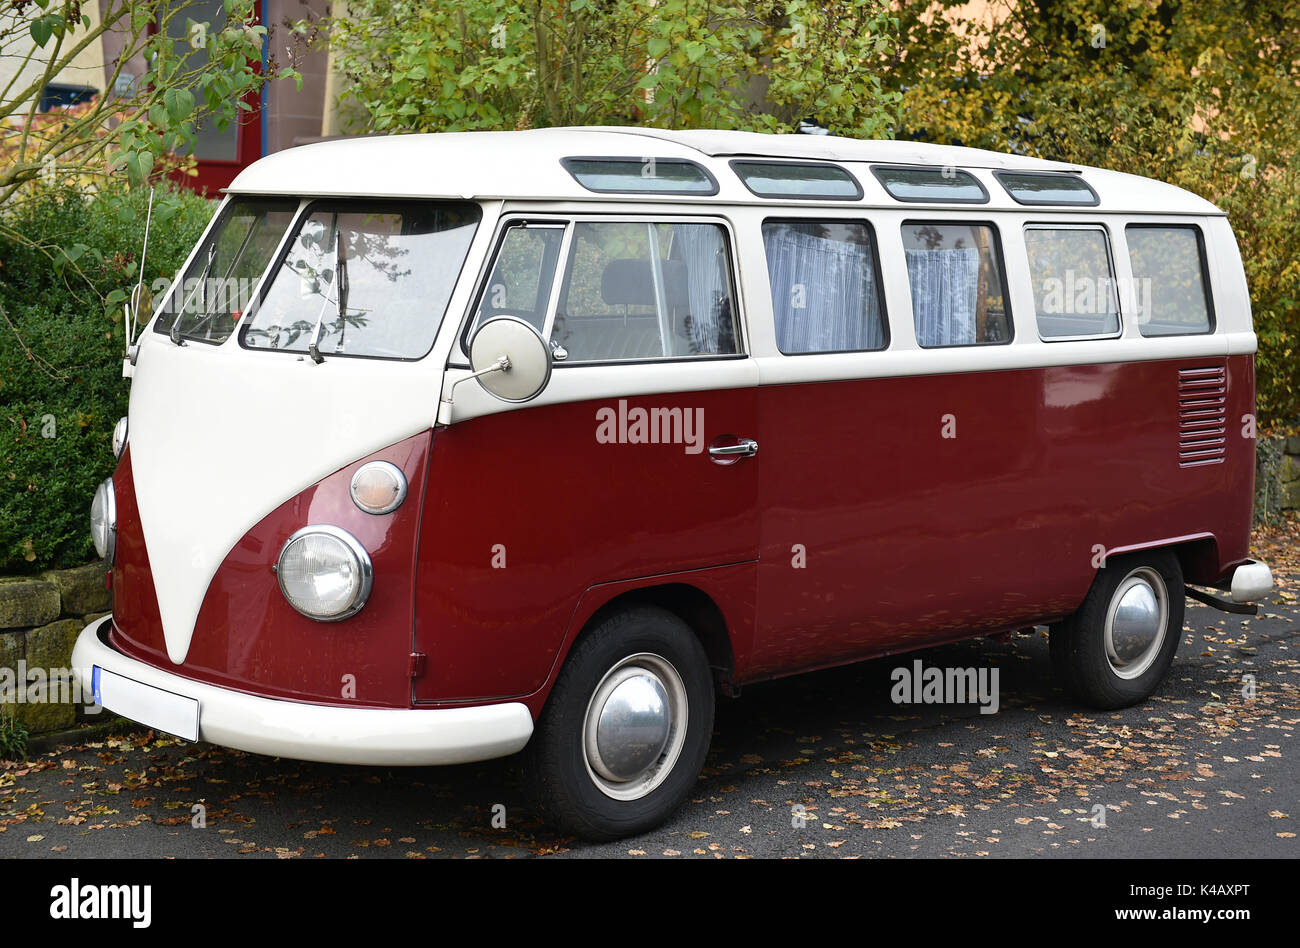 vw bus t1 stock photos vw bus t1 stock images alamy. Black Bedroom Furniture Sets. Home Design Ideas